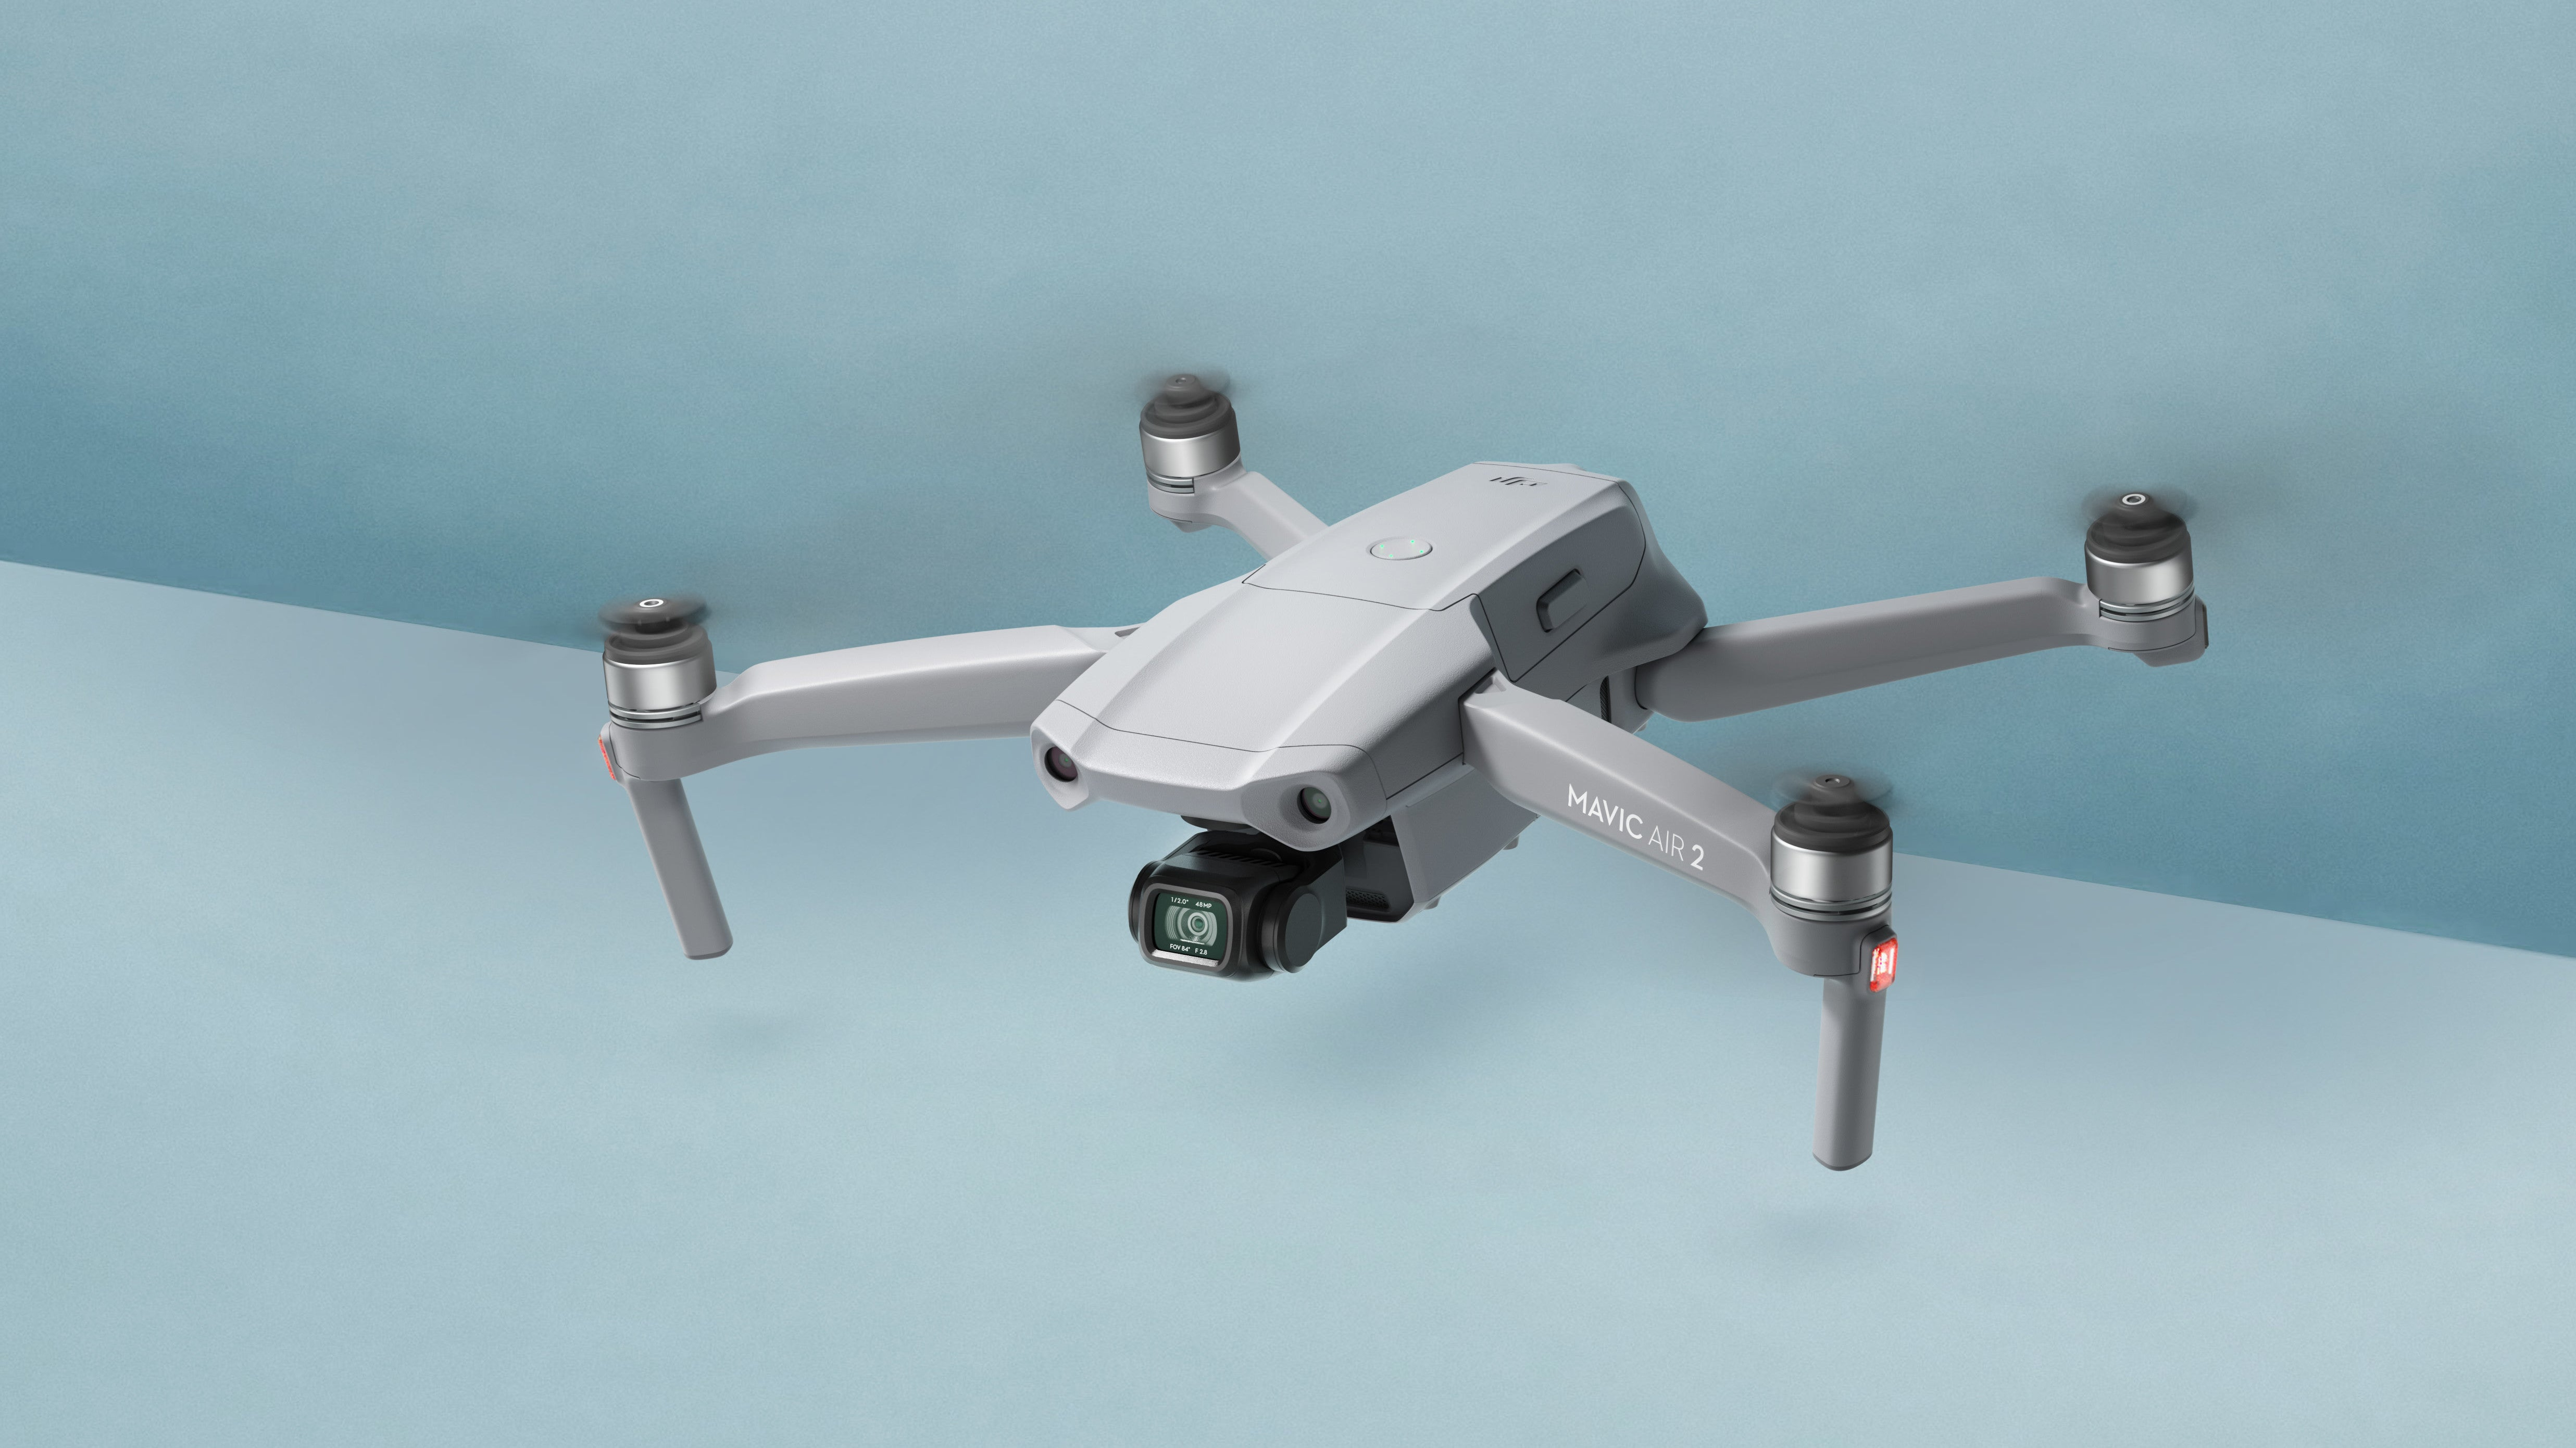 DJI Claims The Mavic Air 2 Is Its Smartest Drone Yet, But Its Definitely Not Its Lightest